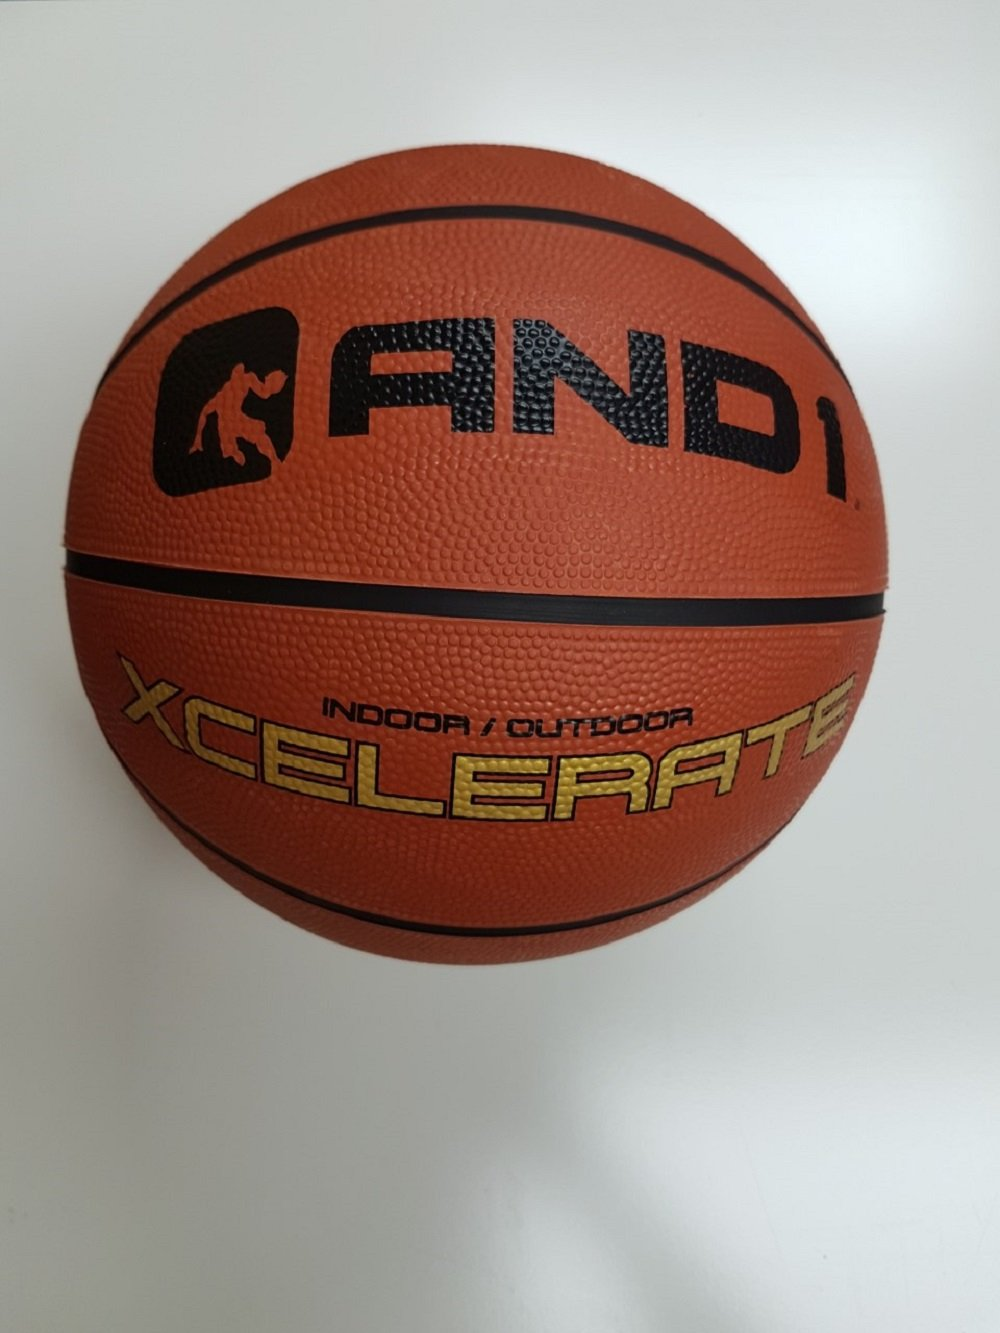 AND1 xecelerate - de Baloncesto de Goma Bola de Calle 29,5, Full ...